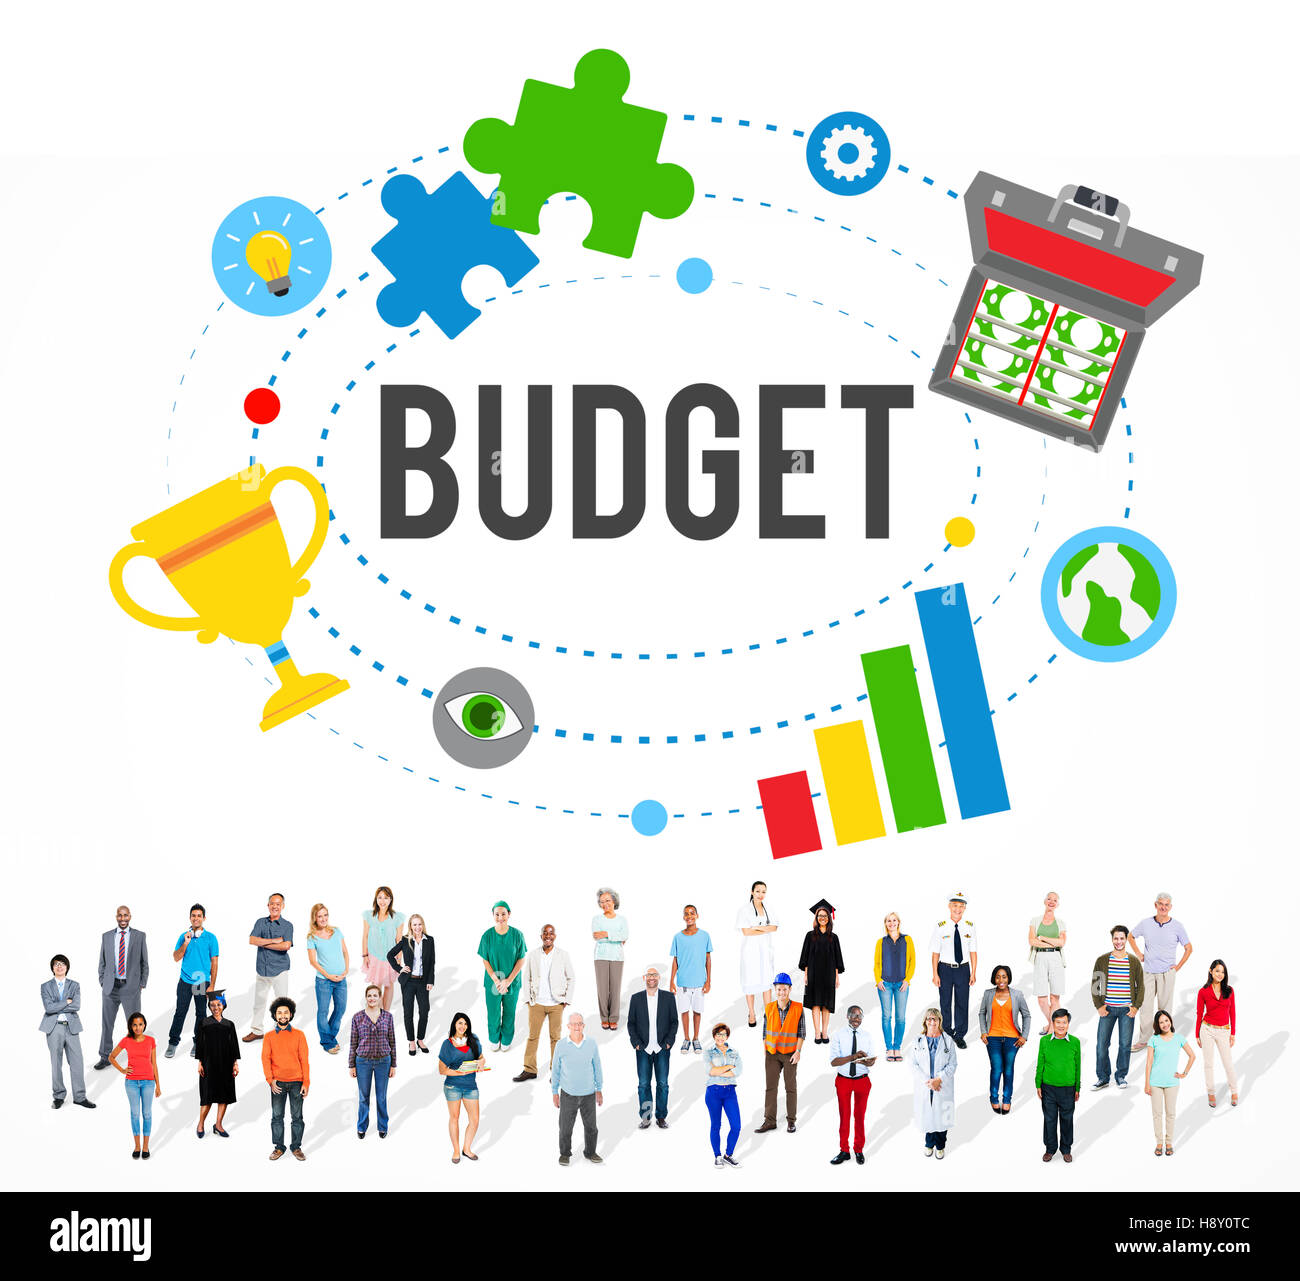 Budget Banking Accounting Investment Bookkeeping Concept - Stock Image